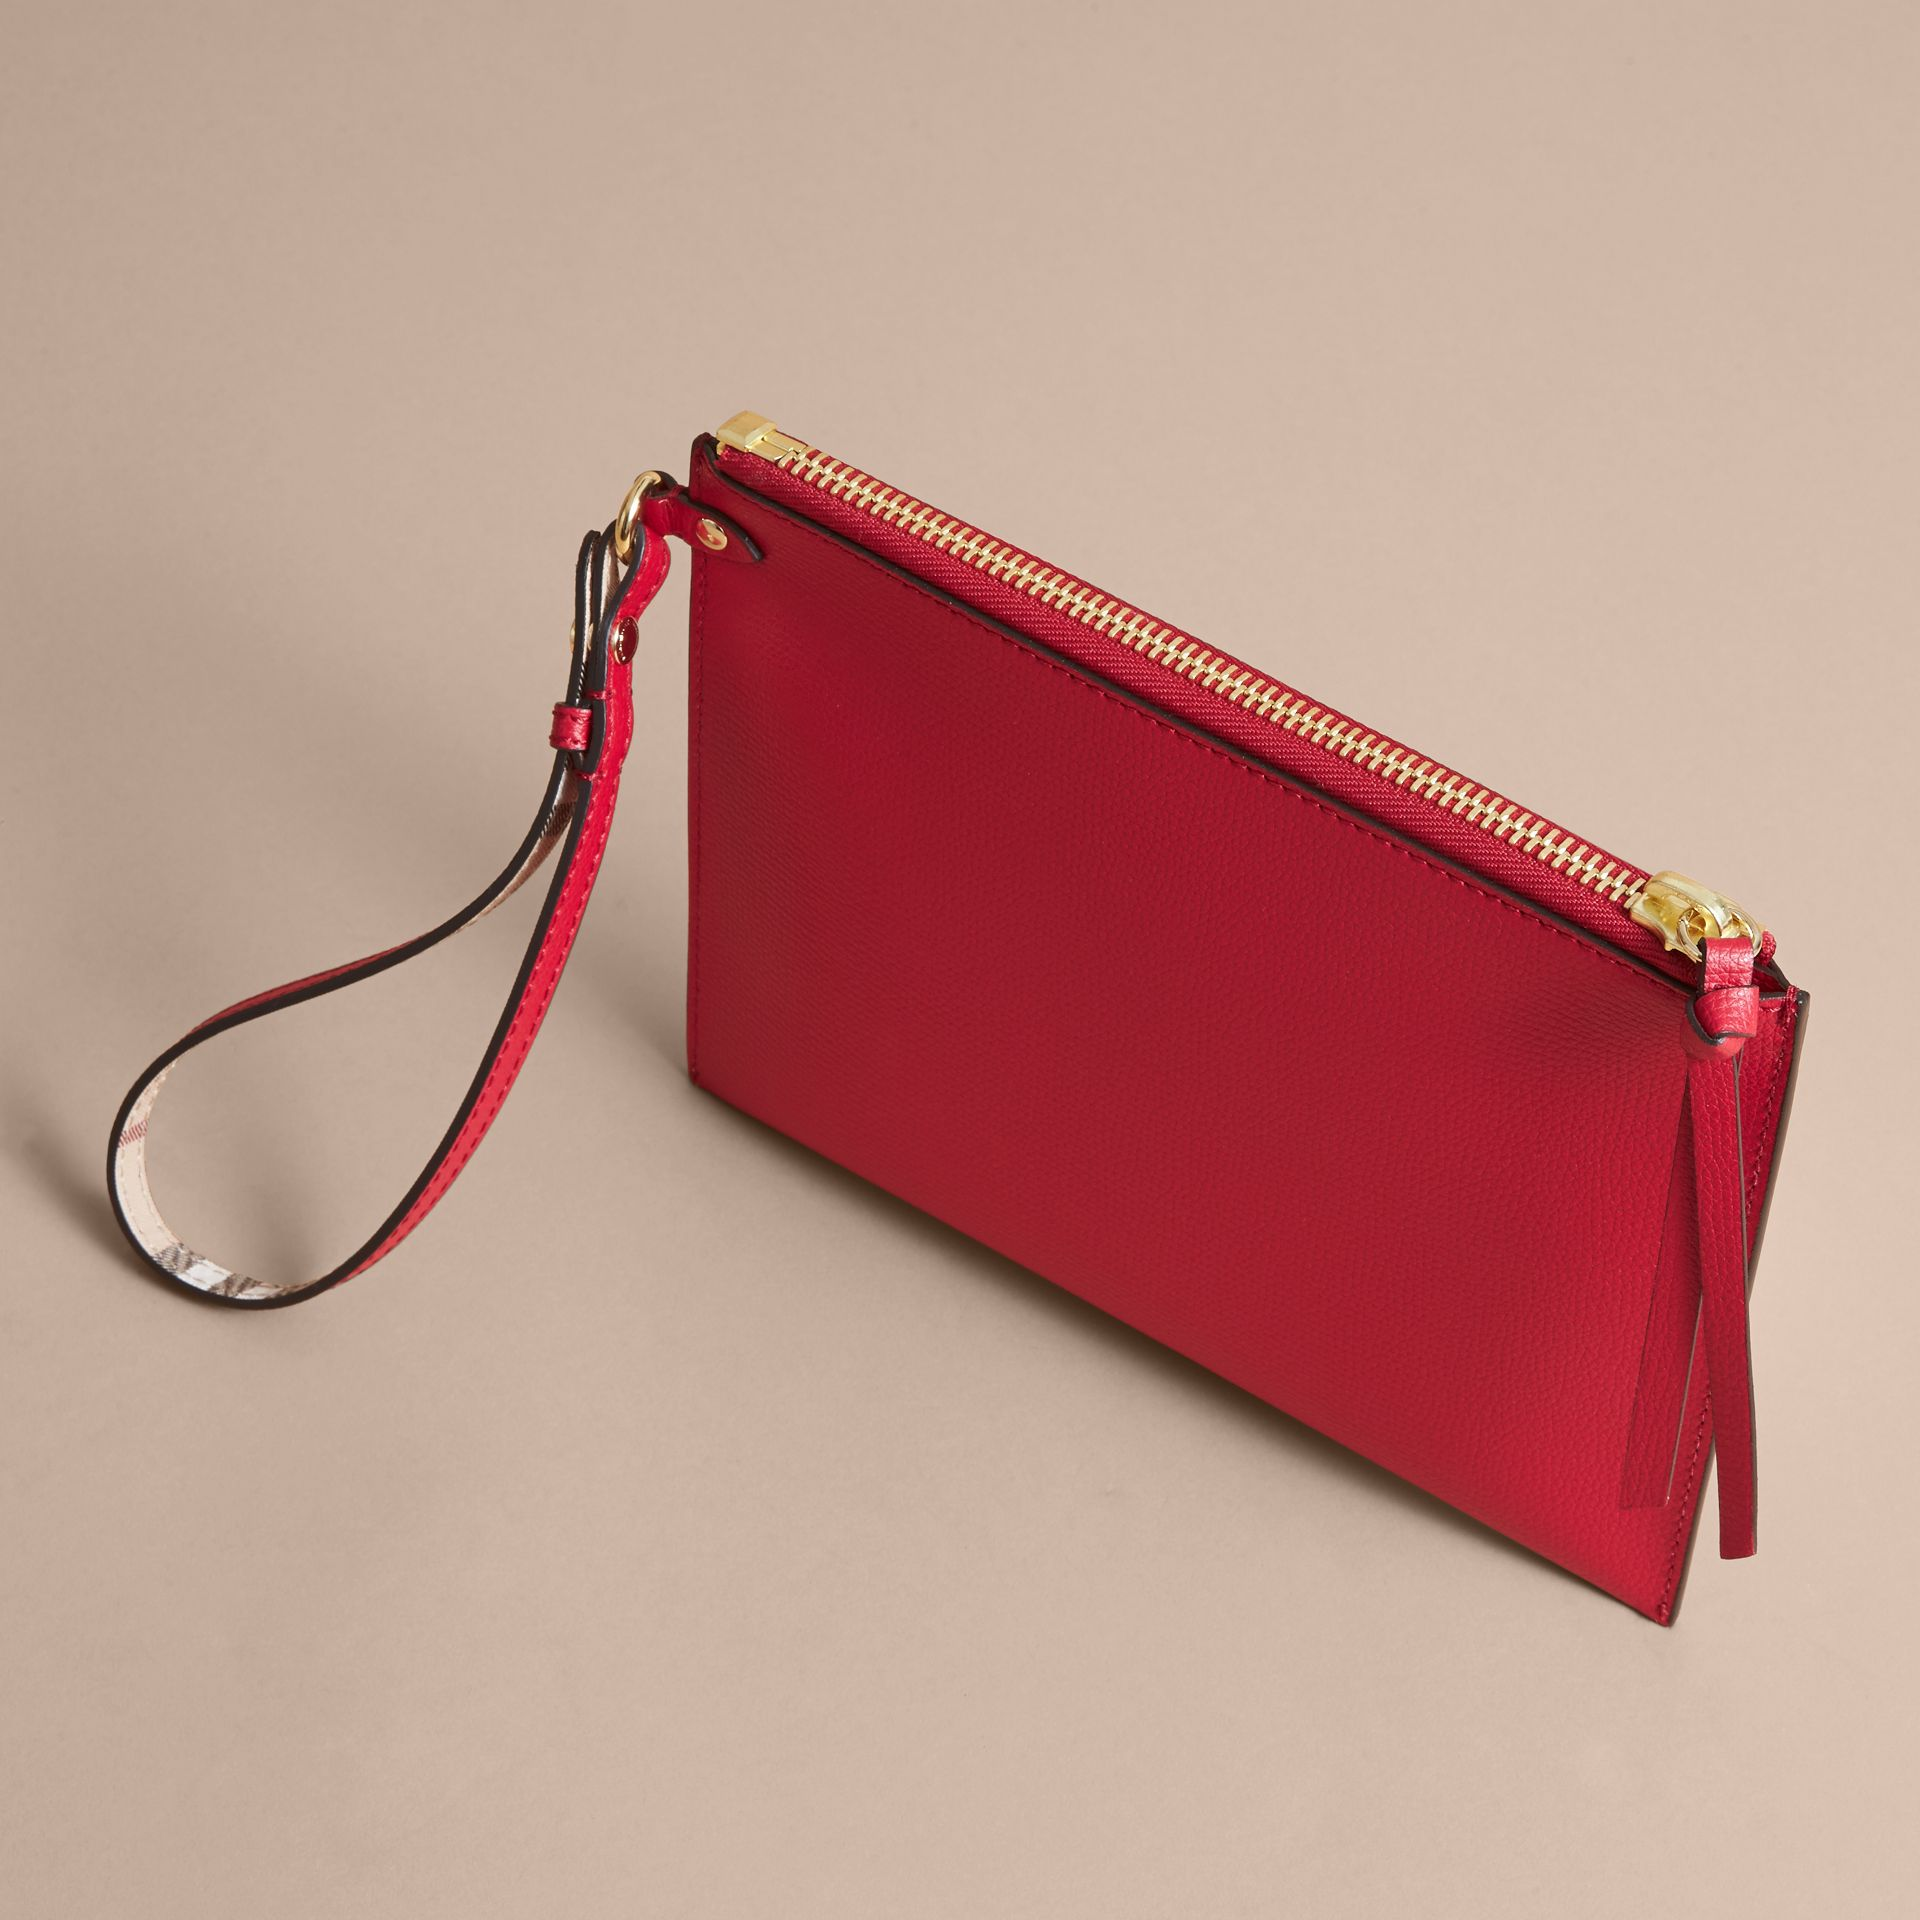 Haymarket Check and Leather Pouch in Poppy Red - Women | Burberry Canada - gallery image 4